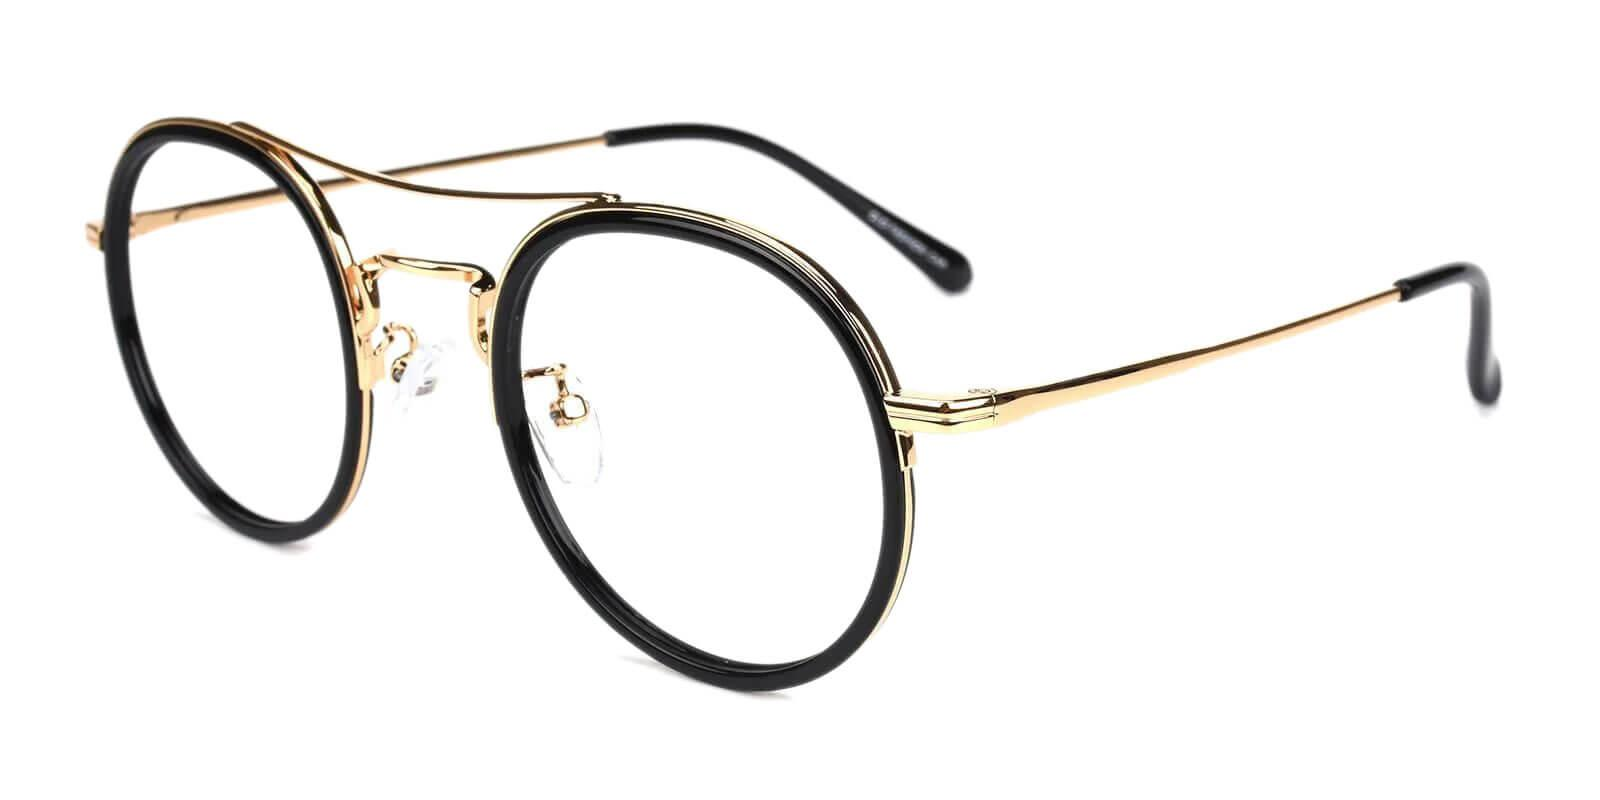 Coexist Gold Combination Eyeglasses , NosePads , SpringHinges Frames from ABBE Glasses